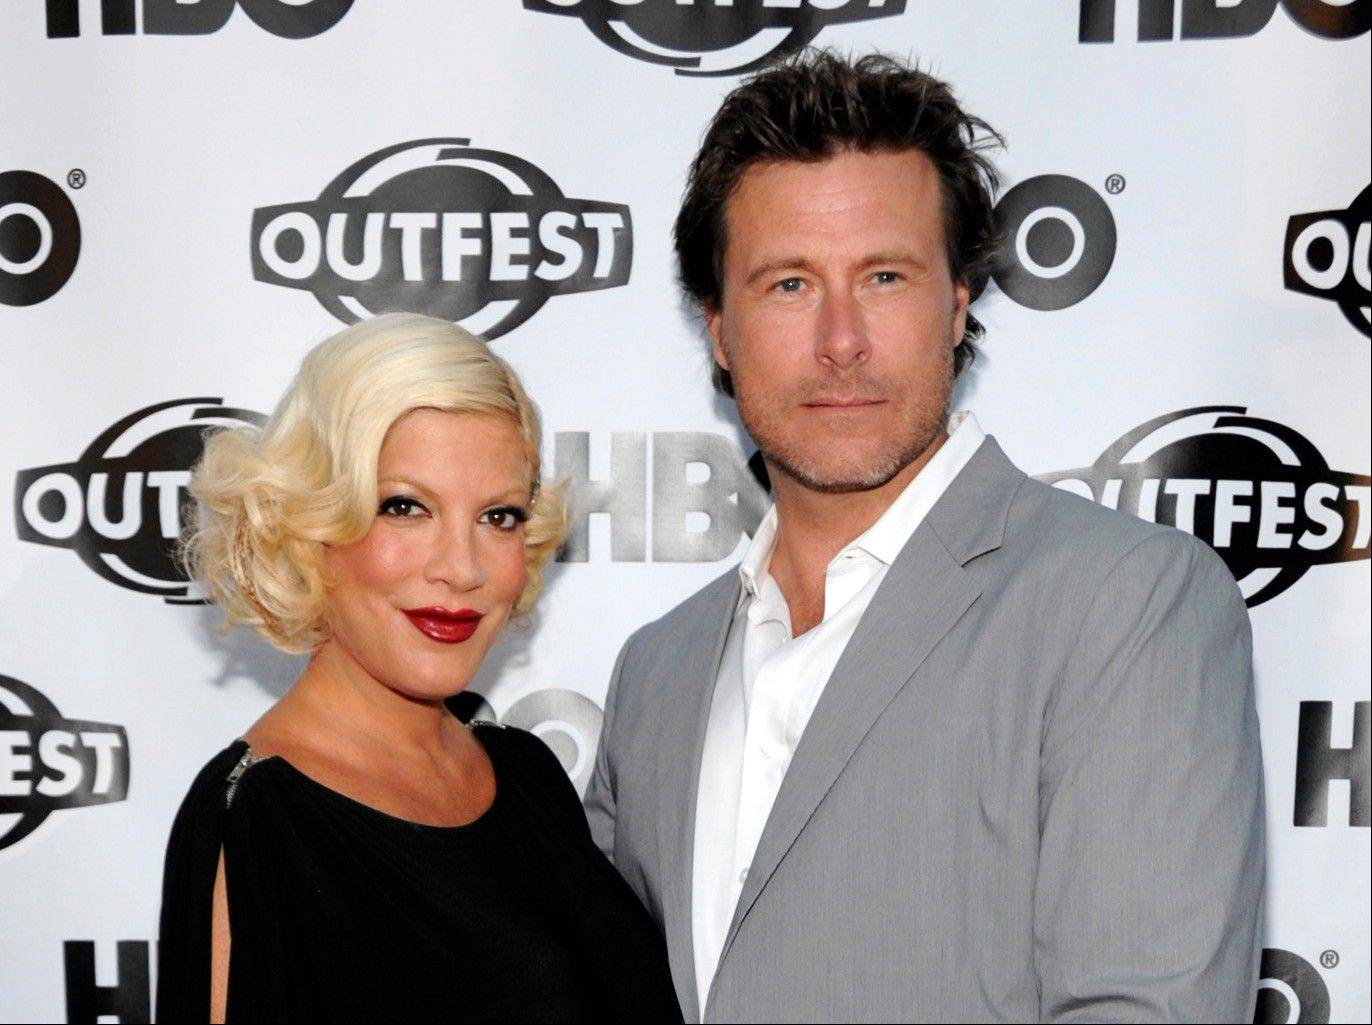 Dean McDermott, husband of actress Tori Spelling, has entered rehab for an unspecified treatment, his publicist Jill Fritzo confirms.